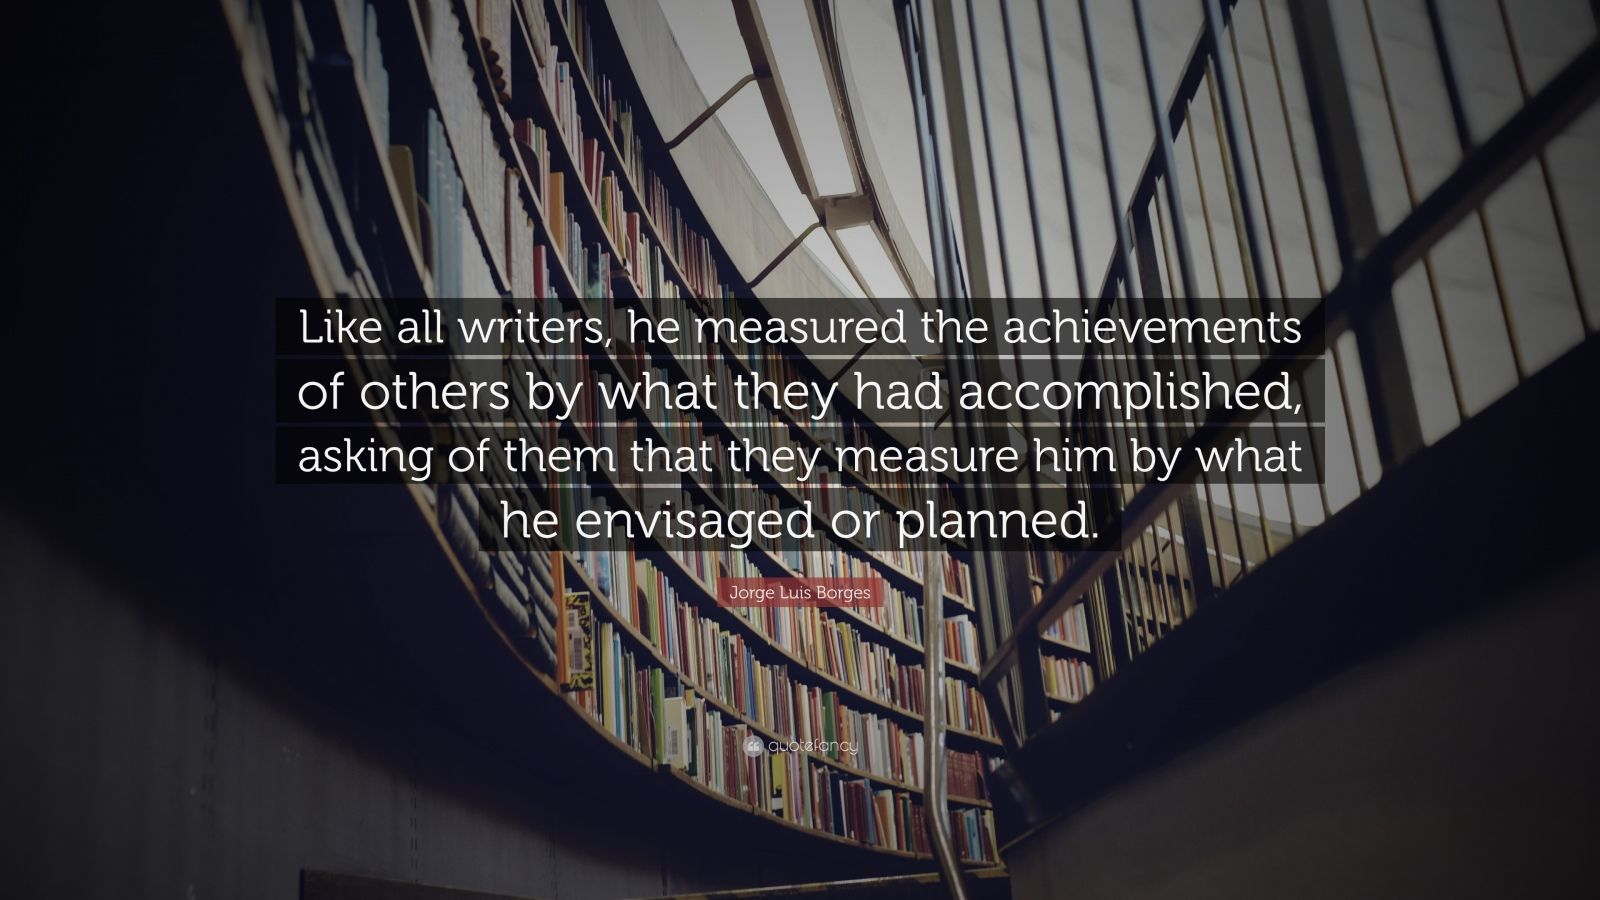 """Jorge Luis Borges Quote: """"Like all writers, he measured the achievements of others by what they had accomplished, asking of them that they measure him by what he envisaged or planned."""""""